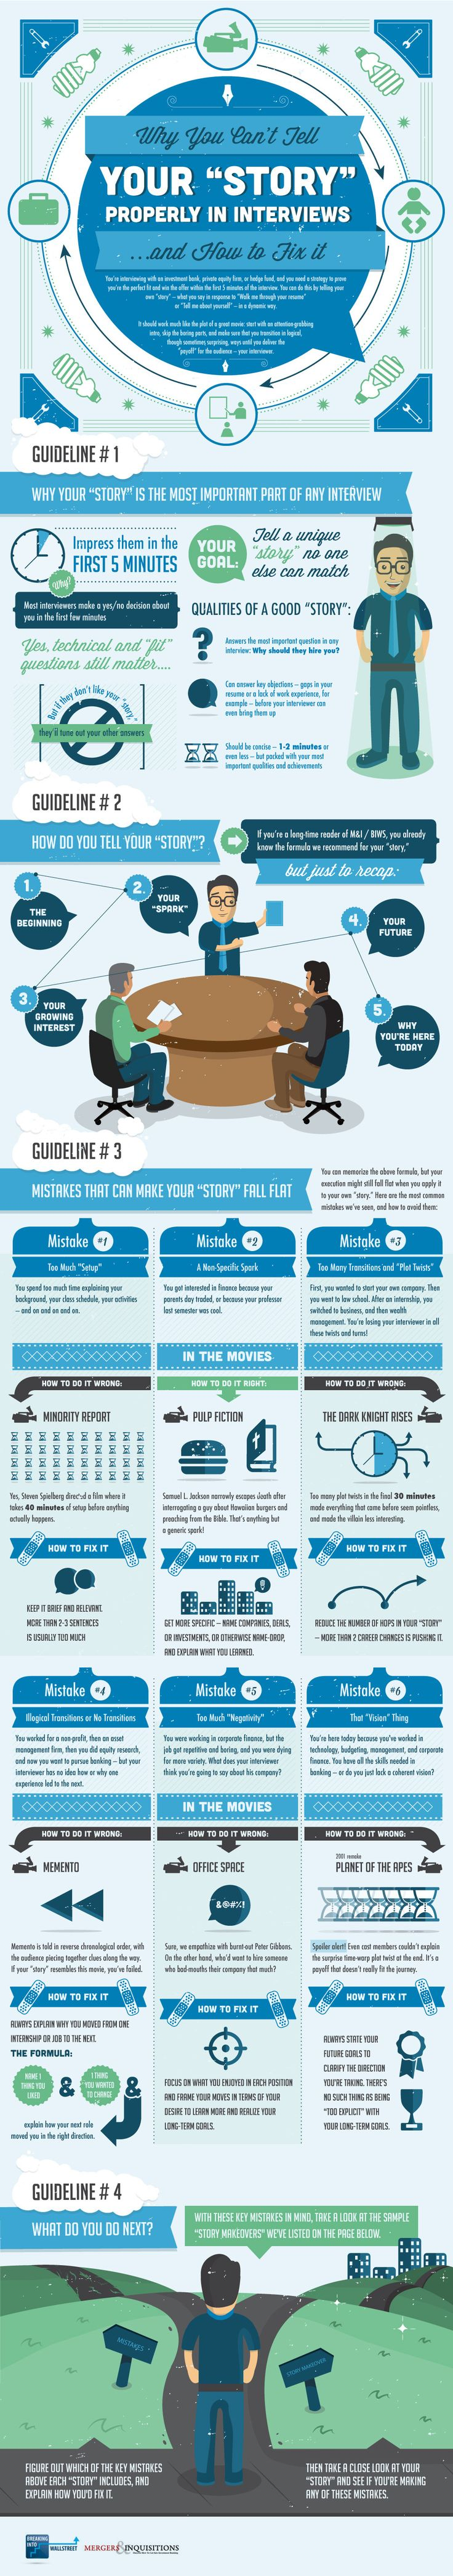 best ideas about leadership interview questions why you can t tell your story properly in interviews and how to fix it infographic